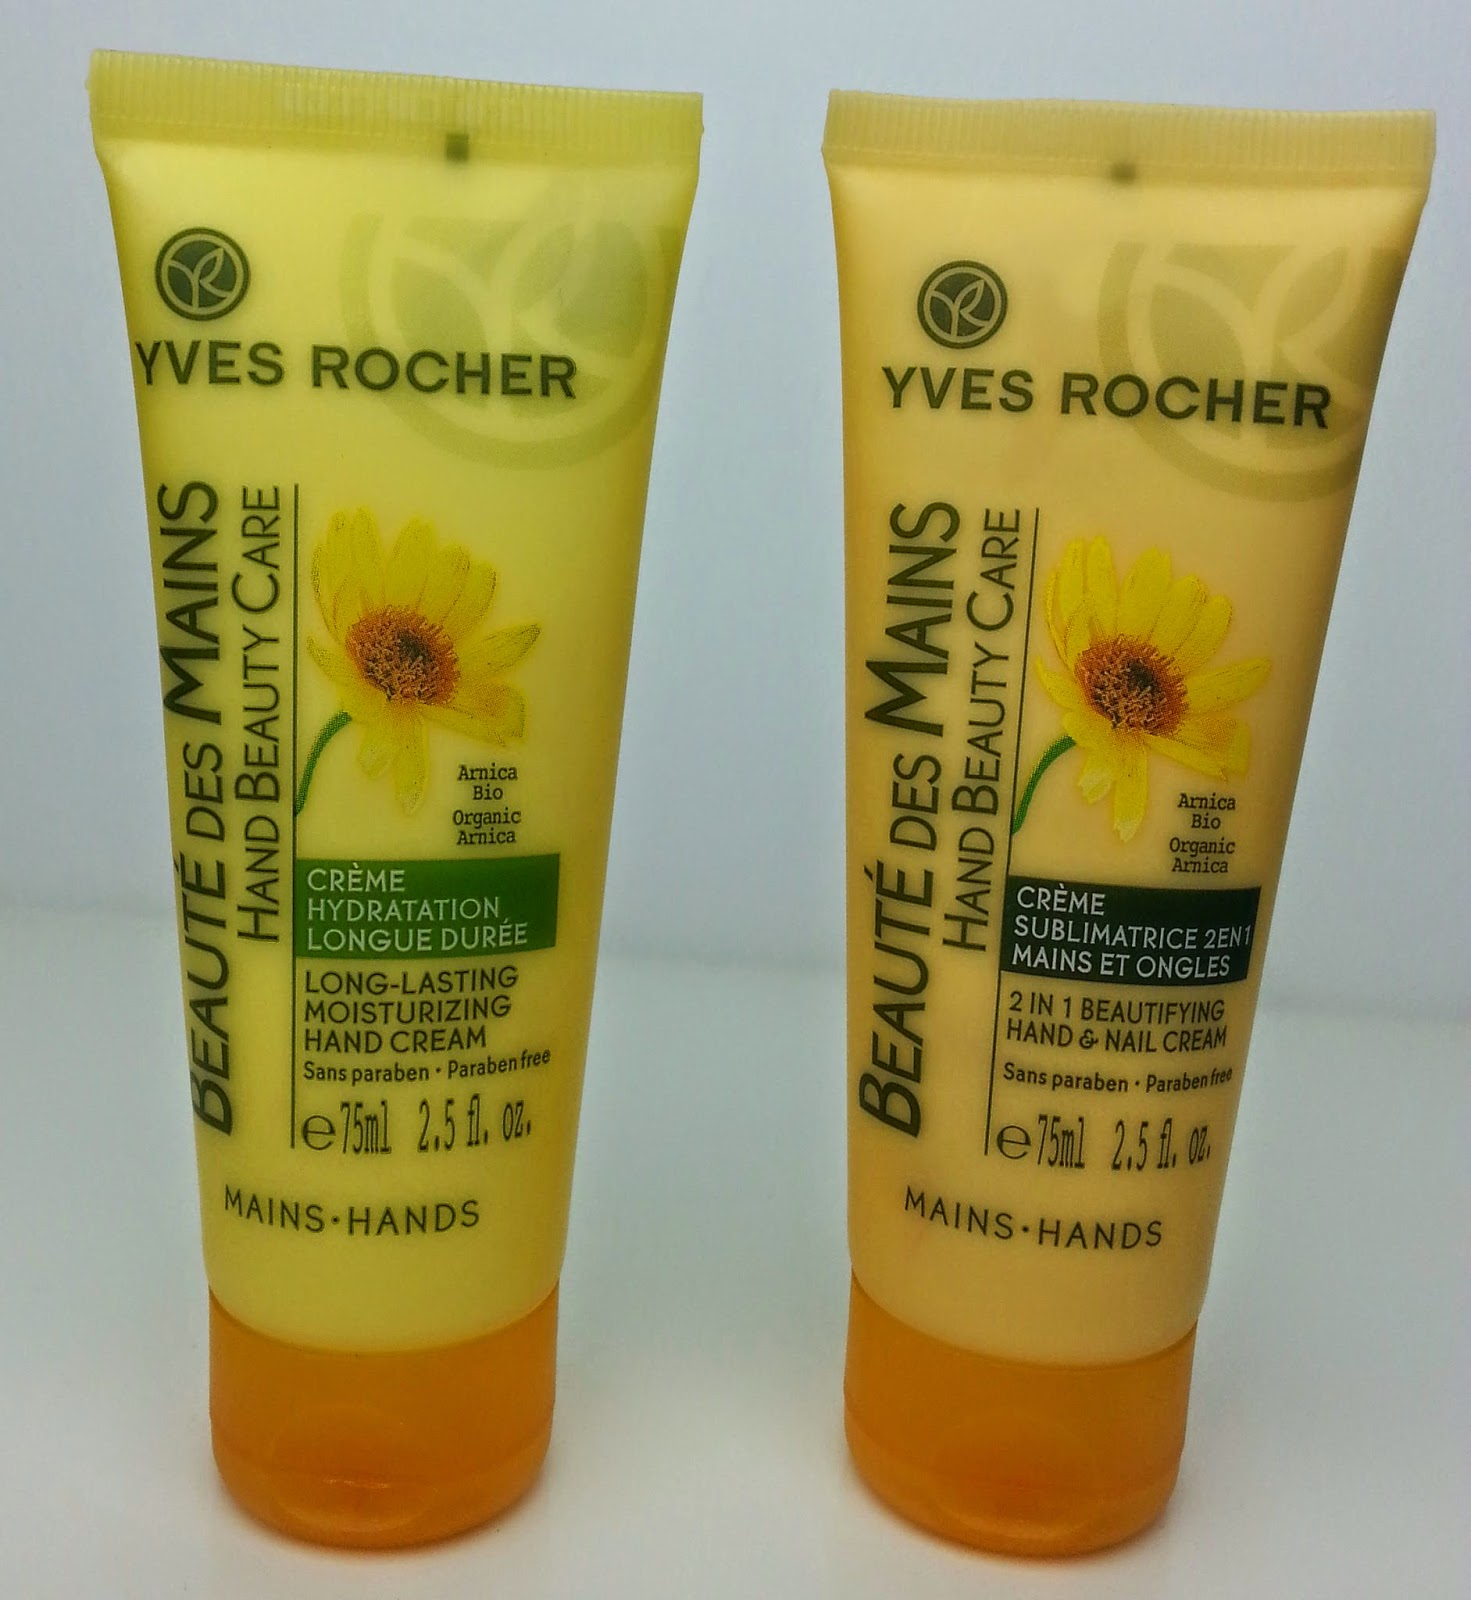 Tube, Packaging, Arnica bio